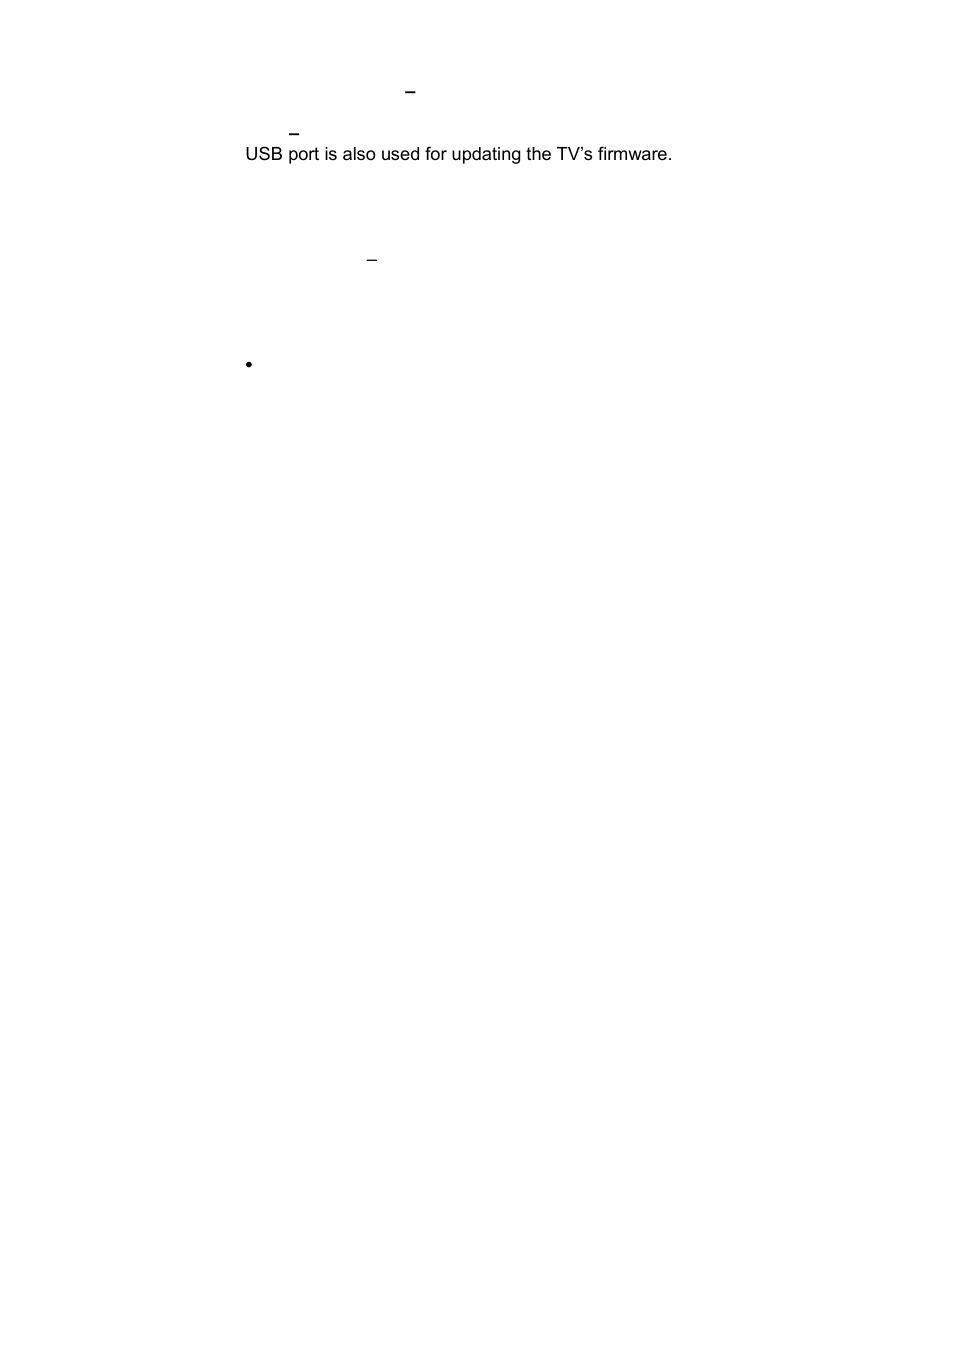 Sceptre X322bv Hd User Manual Page 13 55